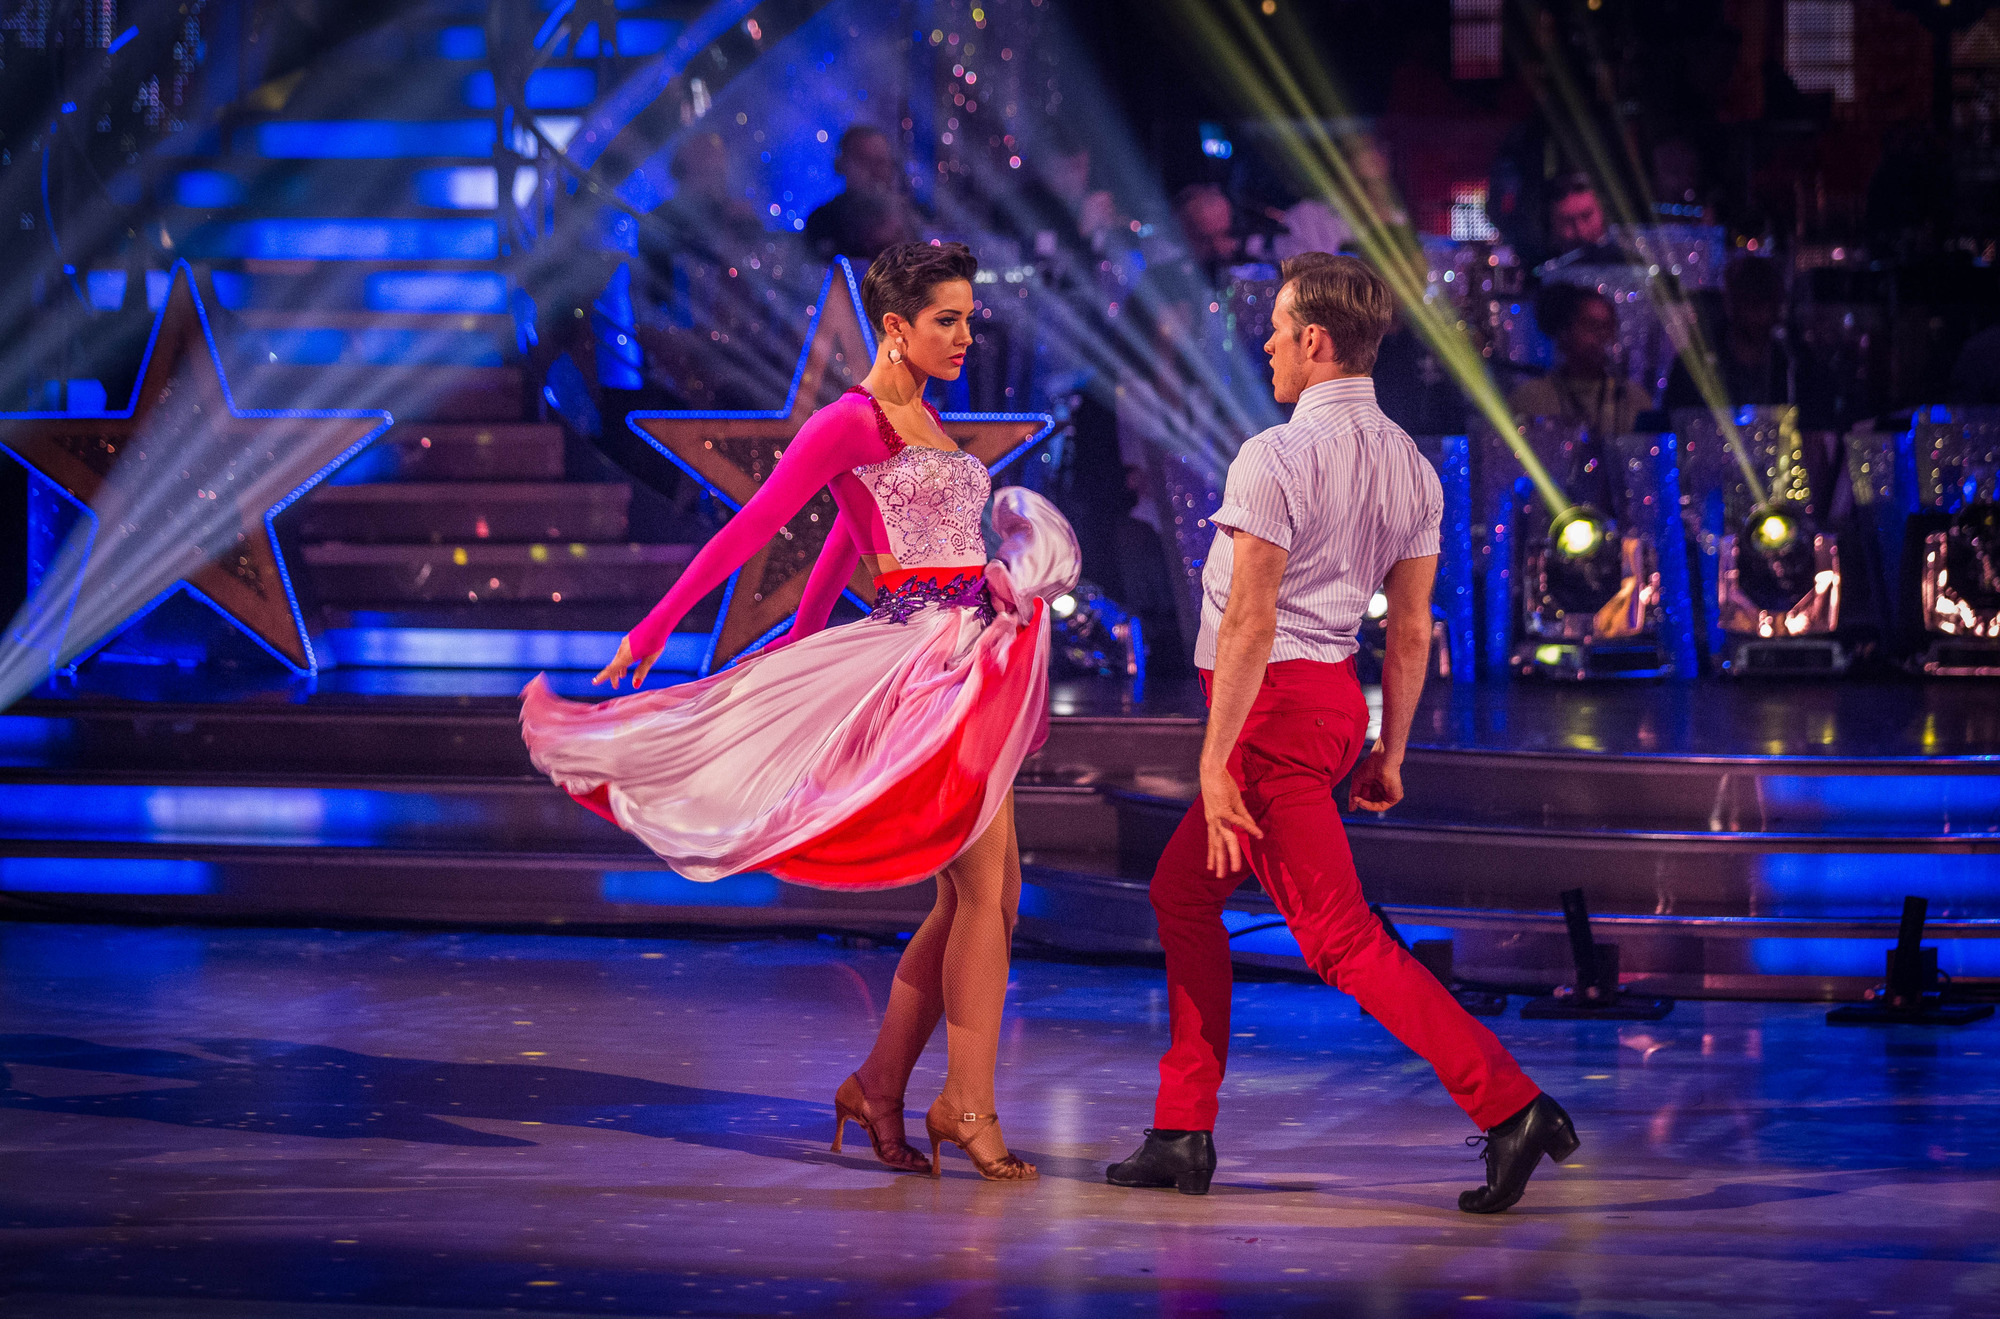 Strictly Come Dancing 2014: Frankie Bridge scores the first 10 of the series